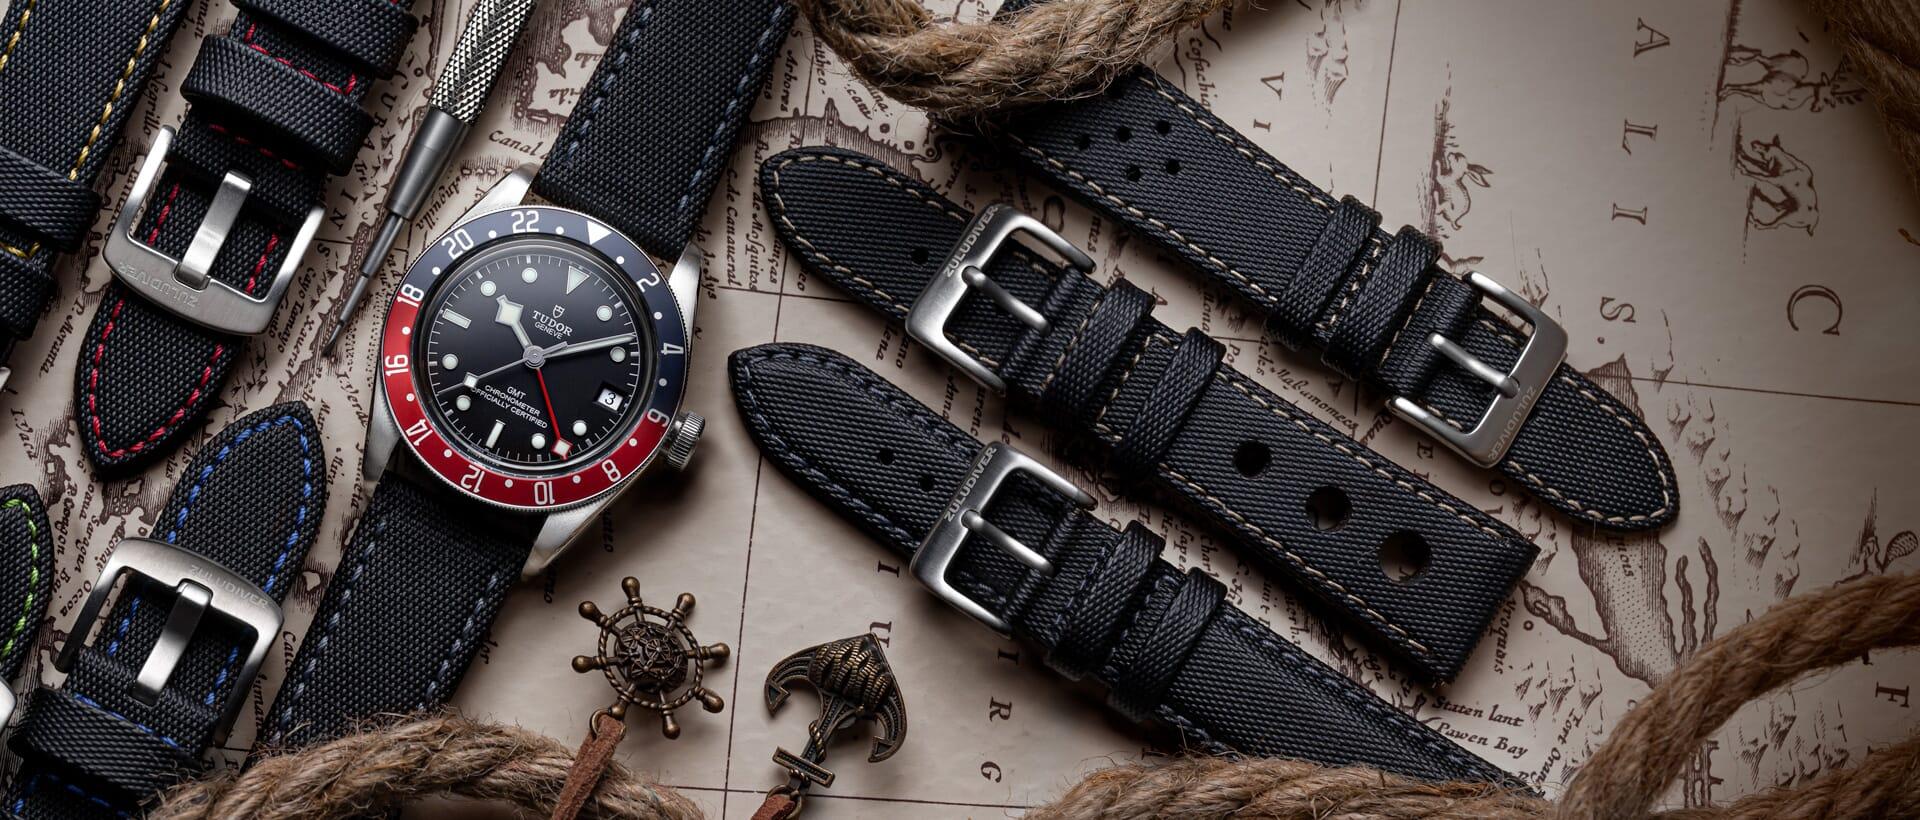 Sailcloth Watch Straps